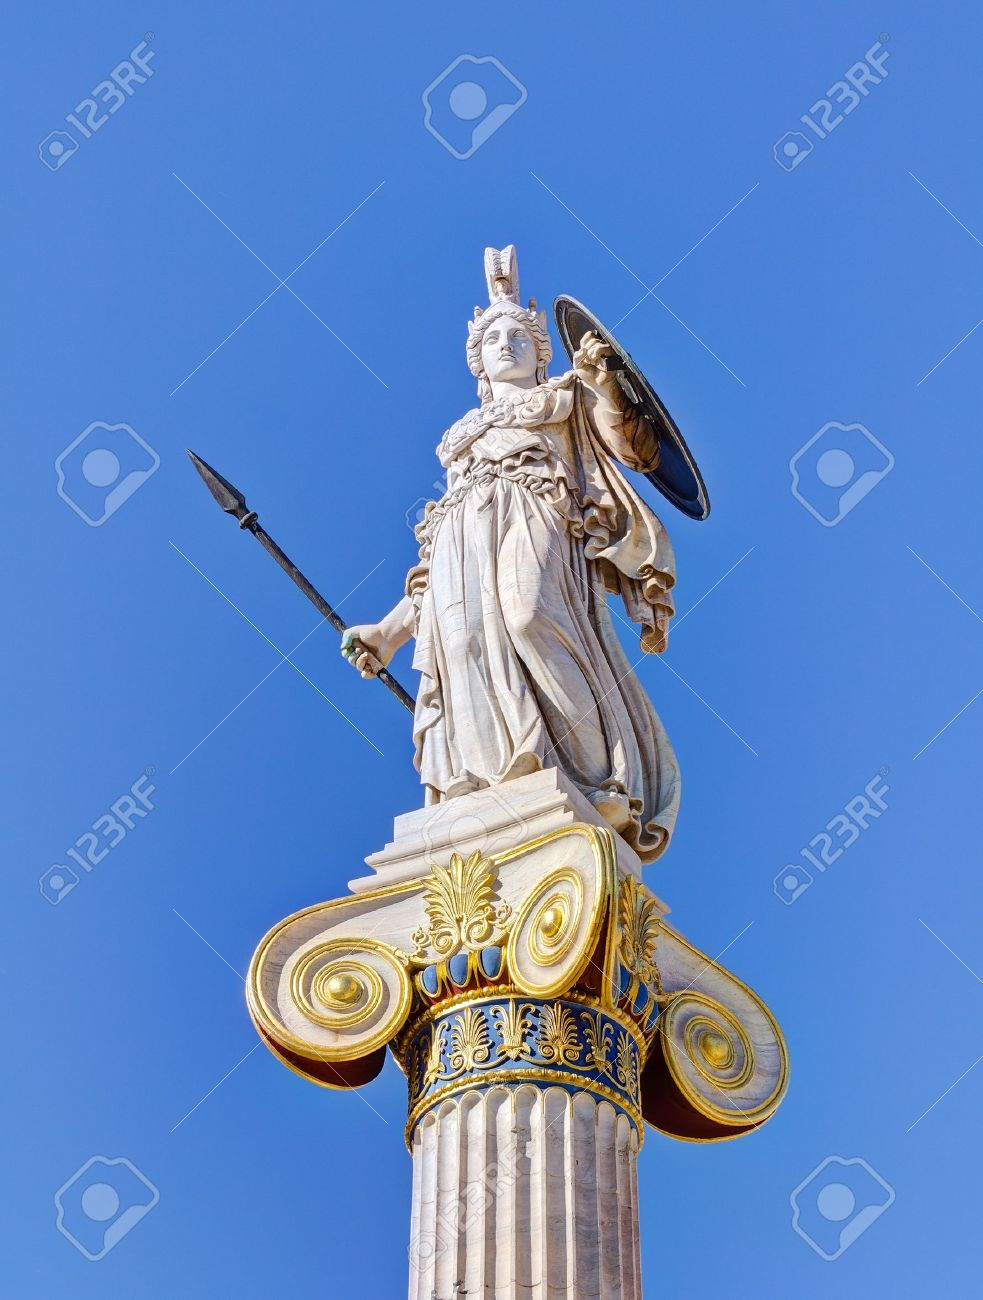 statue of goddess athena athens greece stock photo picture and